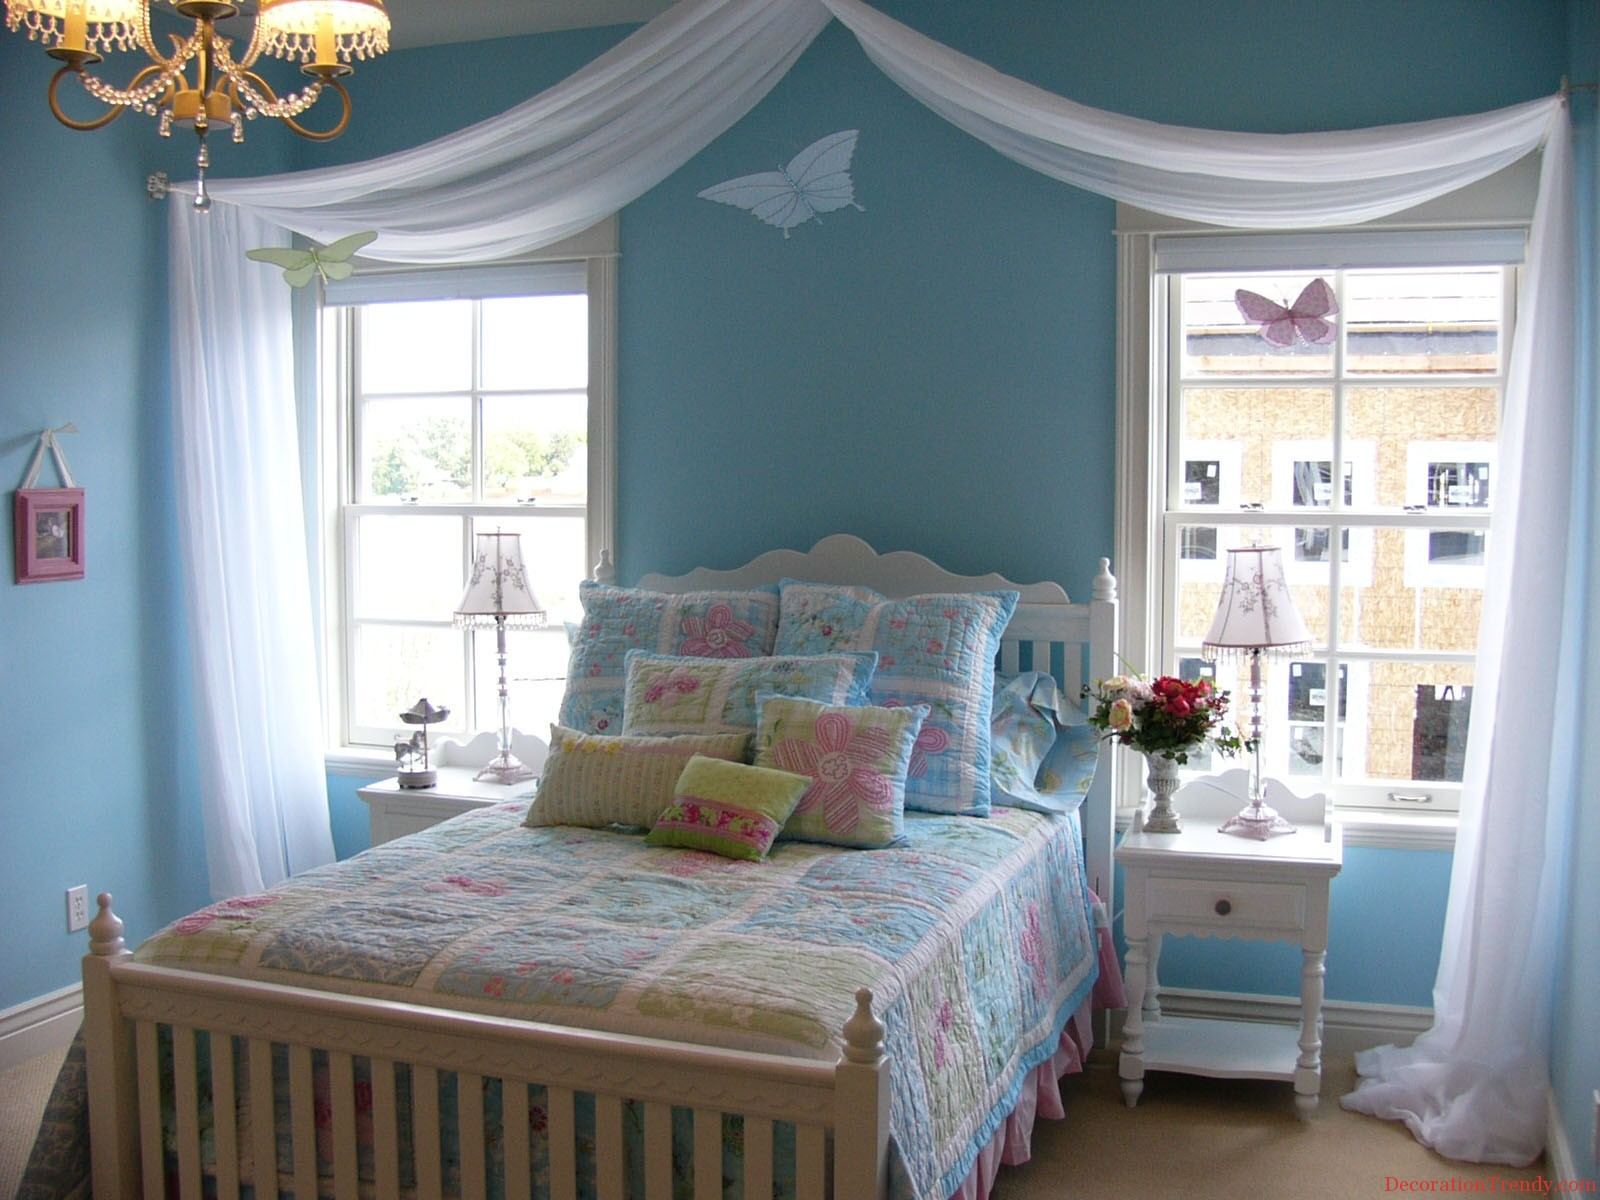 17 Best images about Girls bedroom on Pinterest   Teenagers  Girls bedroom  and Rooms furniture. 17 Best images about Girls bedroom on Pinterest   Teenagers  Girls